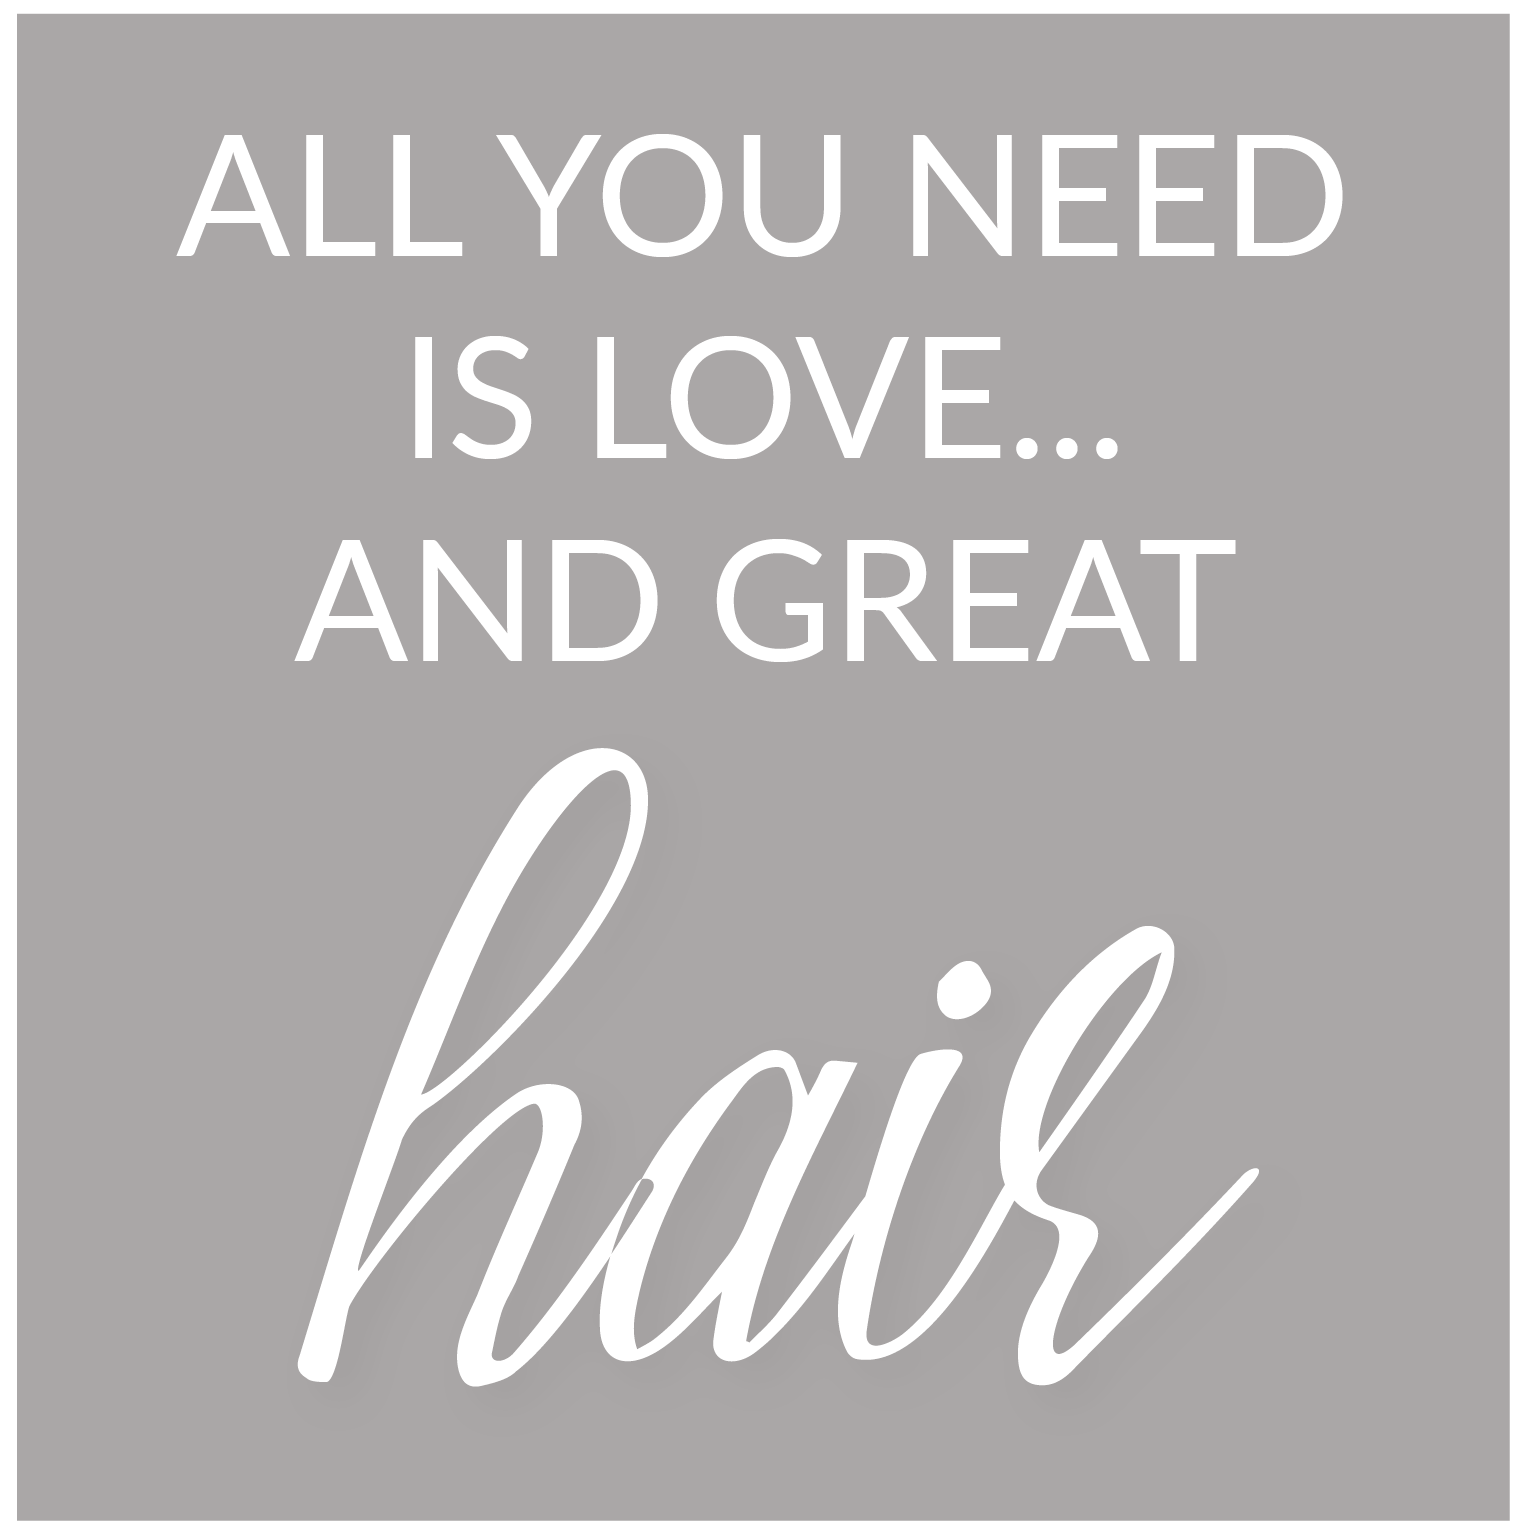 Blueprint hair studio bermudas luxury hair salon love and great hair quote malvernweather Images